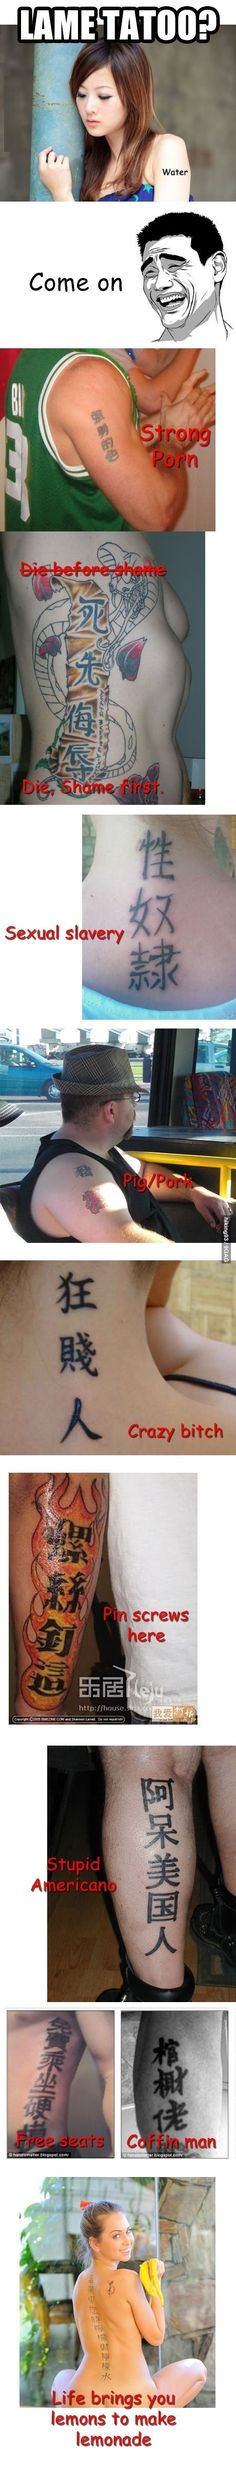 Tattoo Fails // funny pictures - funny photos - funny images - funny pics - funny quotes - #lol #humor #funnypictures